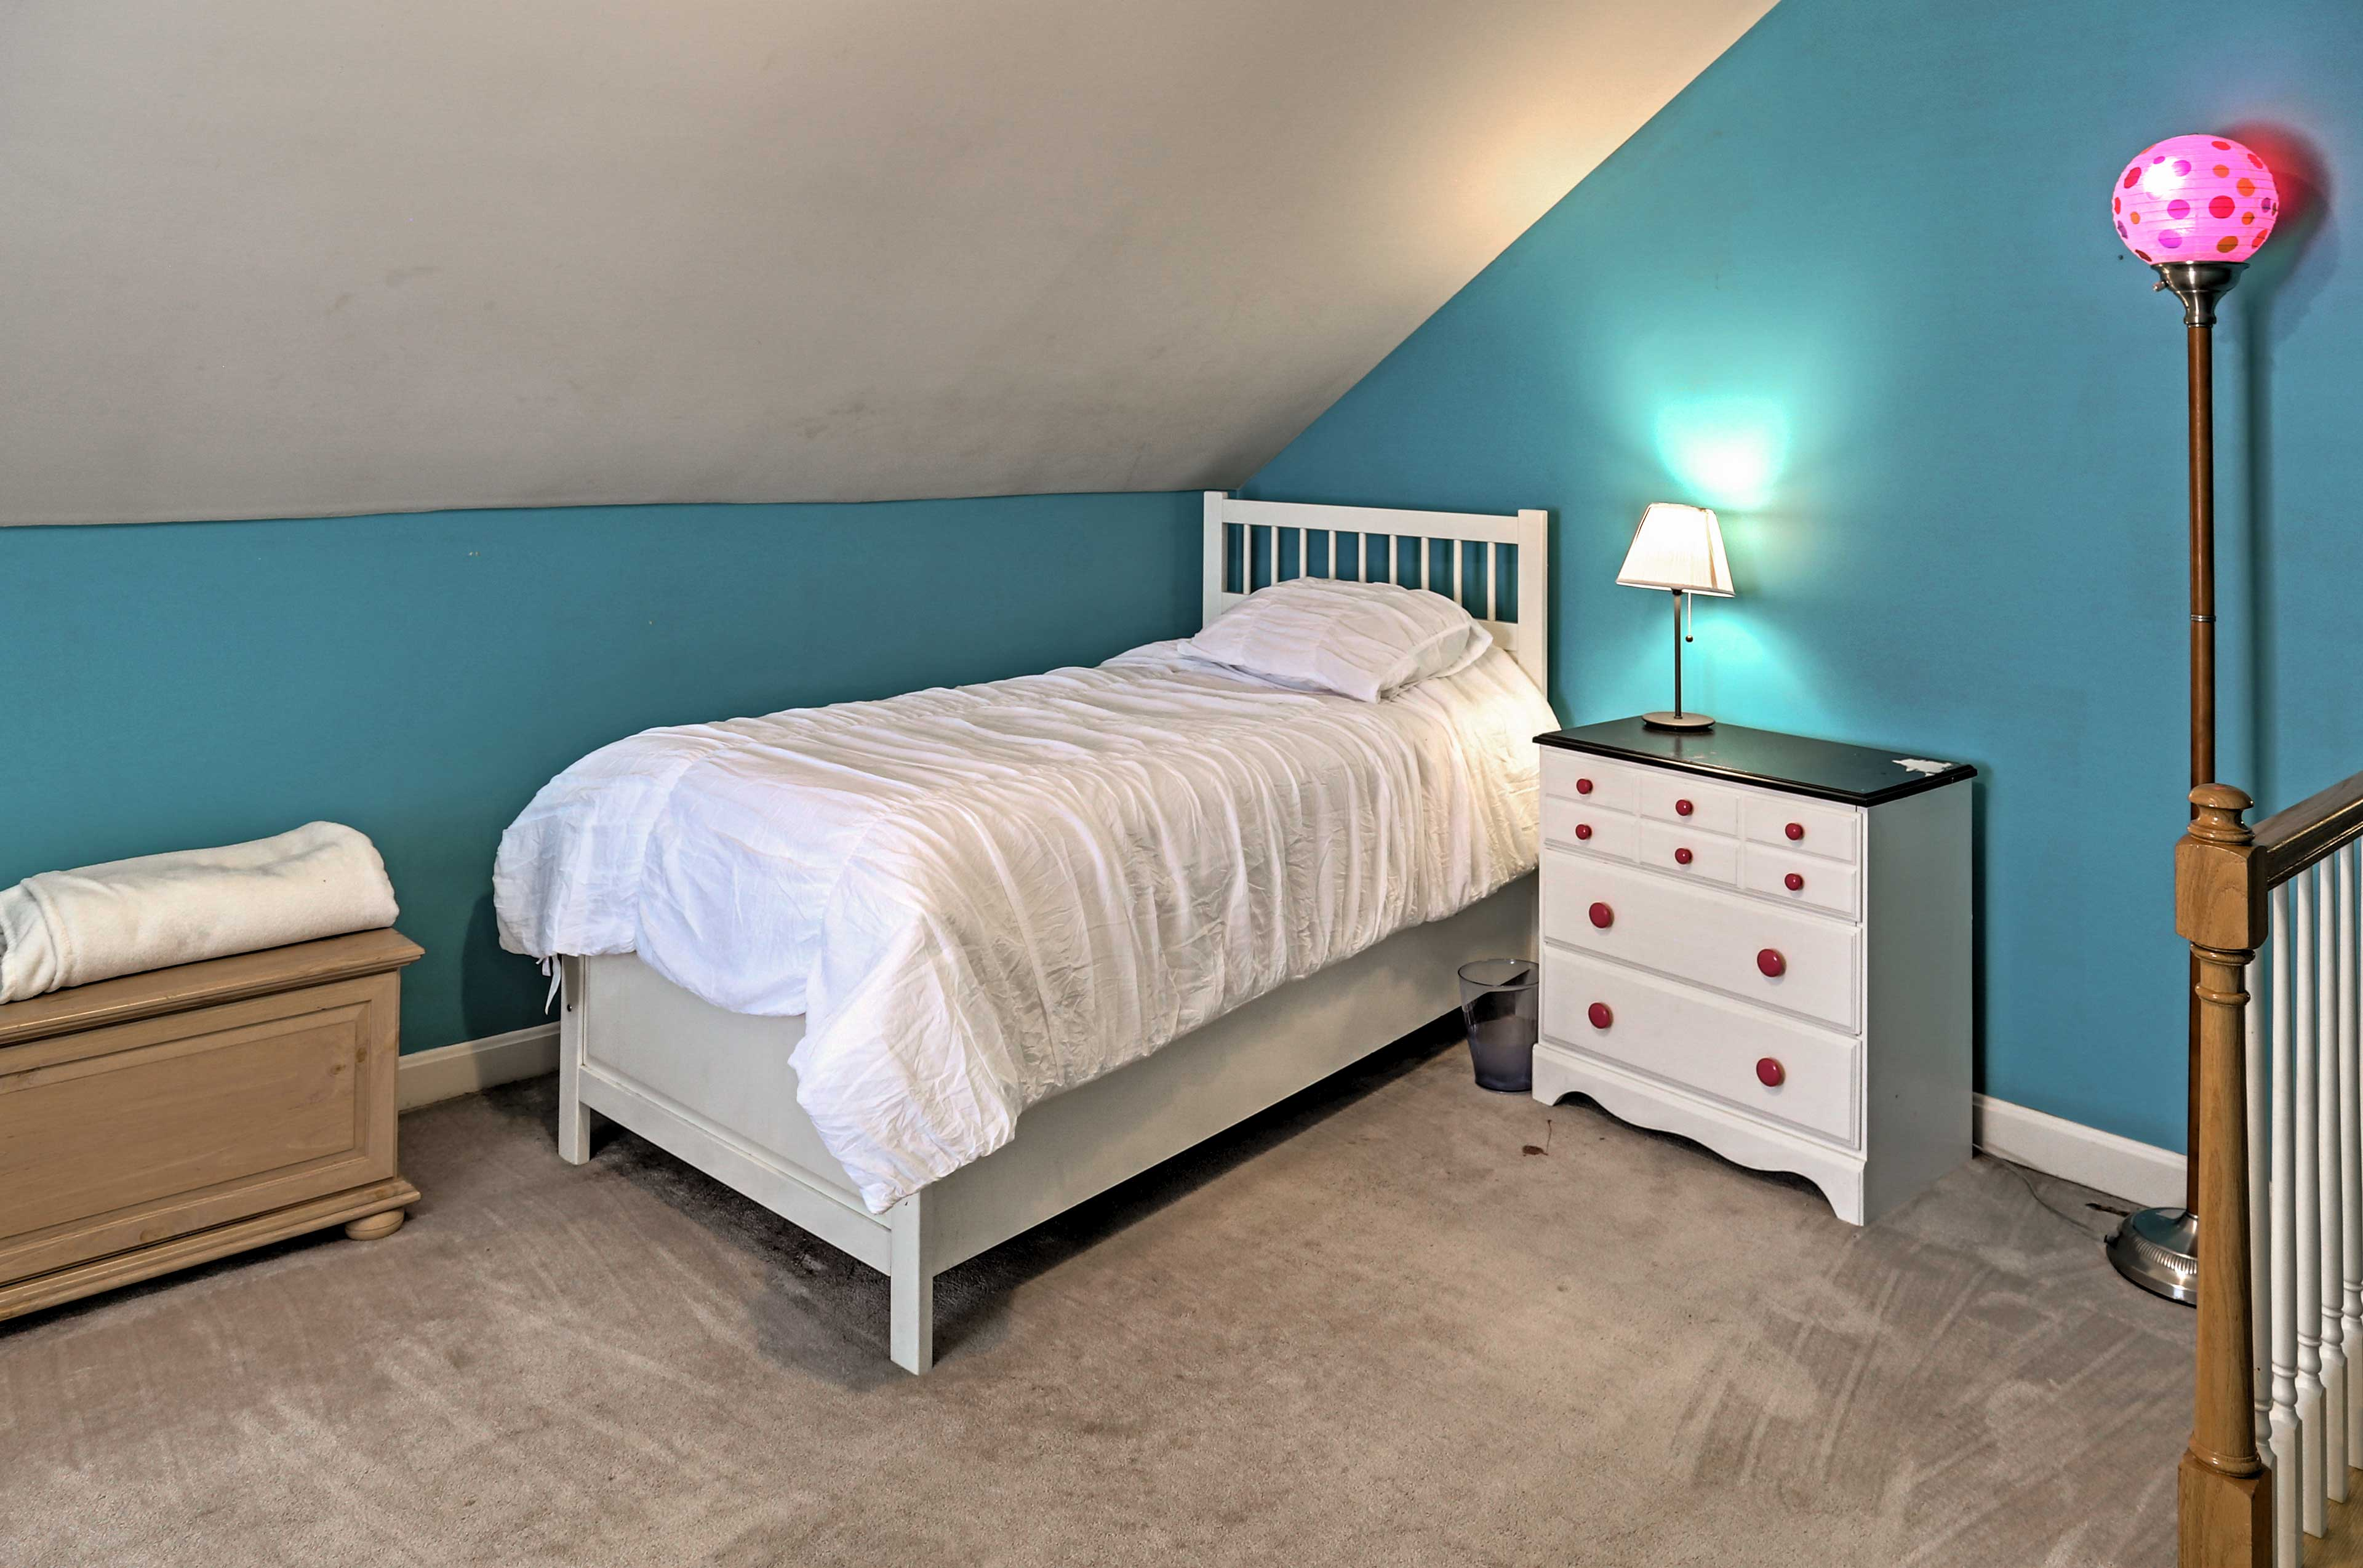 Kids will love this vibrant room with a twin bed.